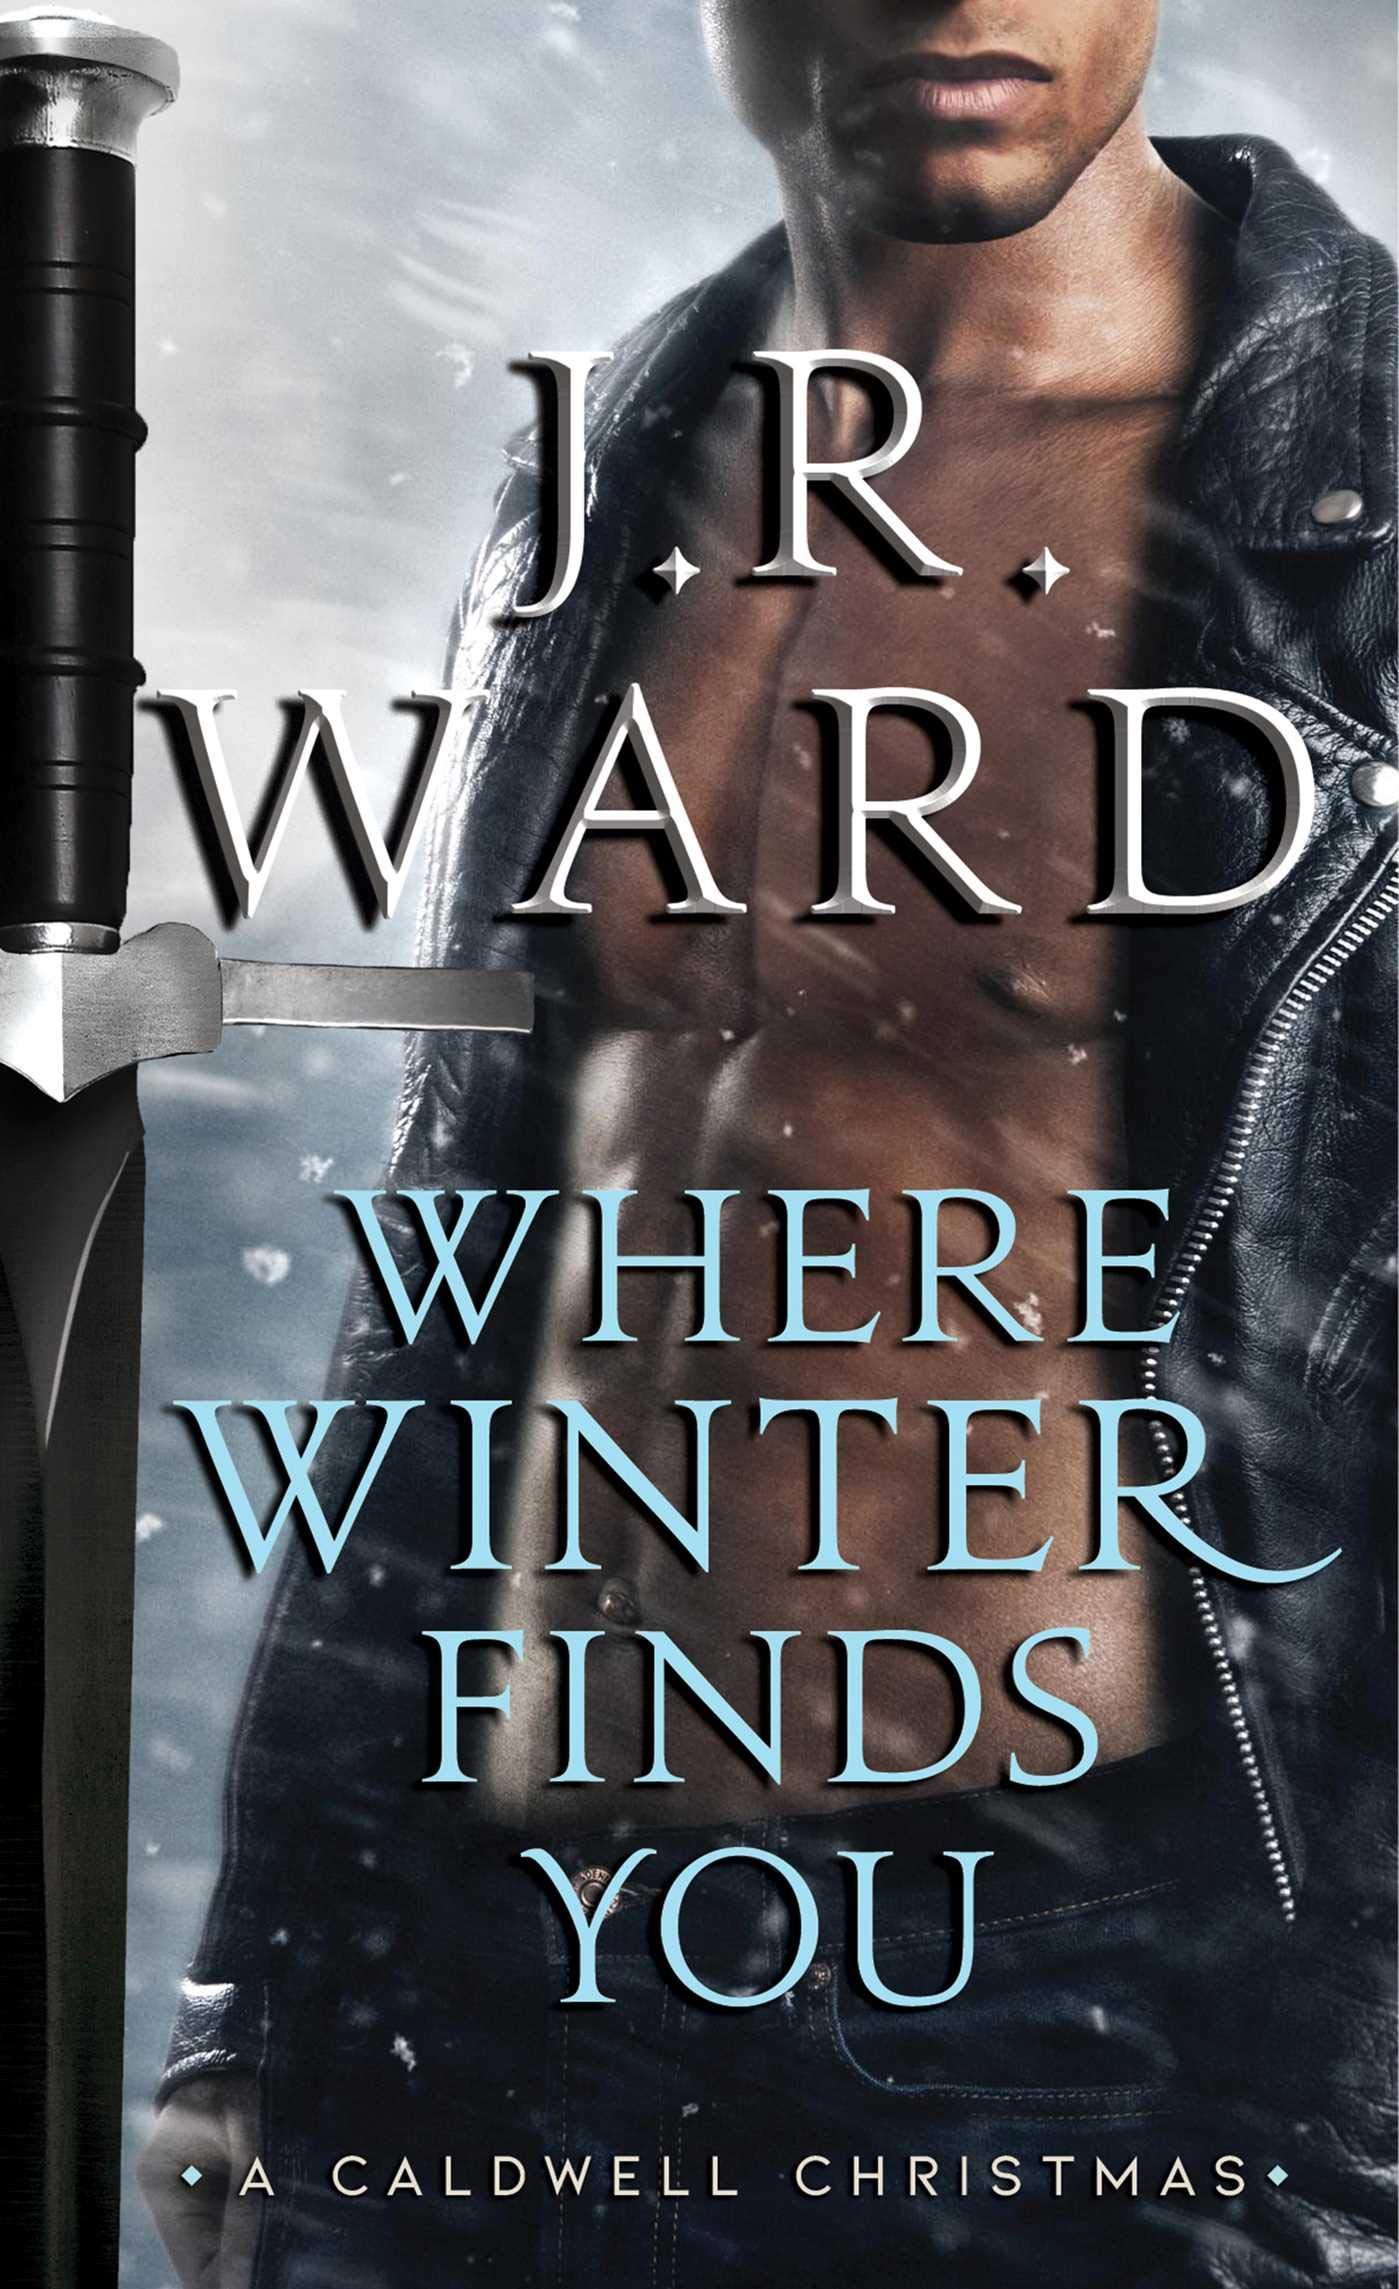 Where Winter Finds You: A Caldwell Christmas (The Black Dagger Brotherhood series) (The Black Dagger Brotherhood World)